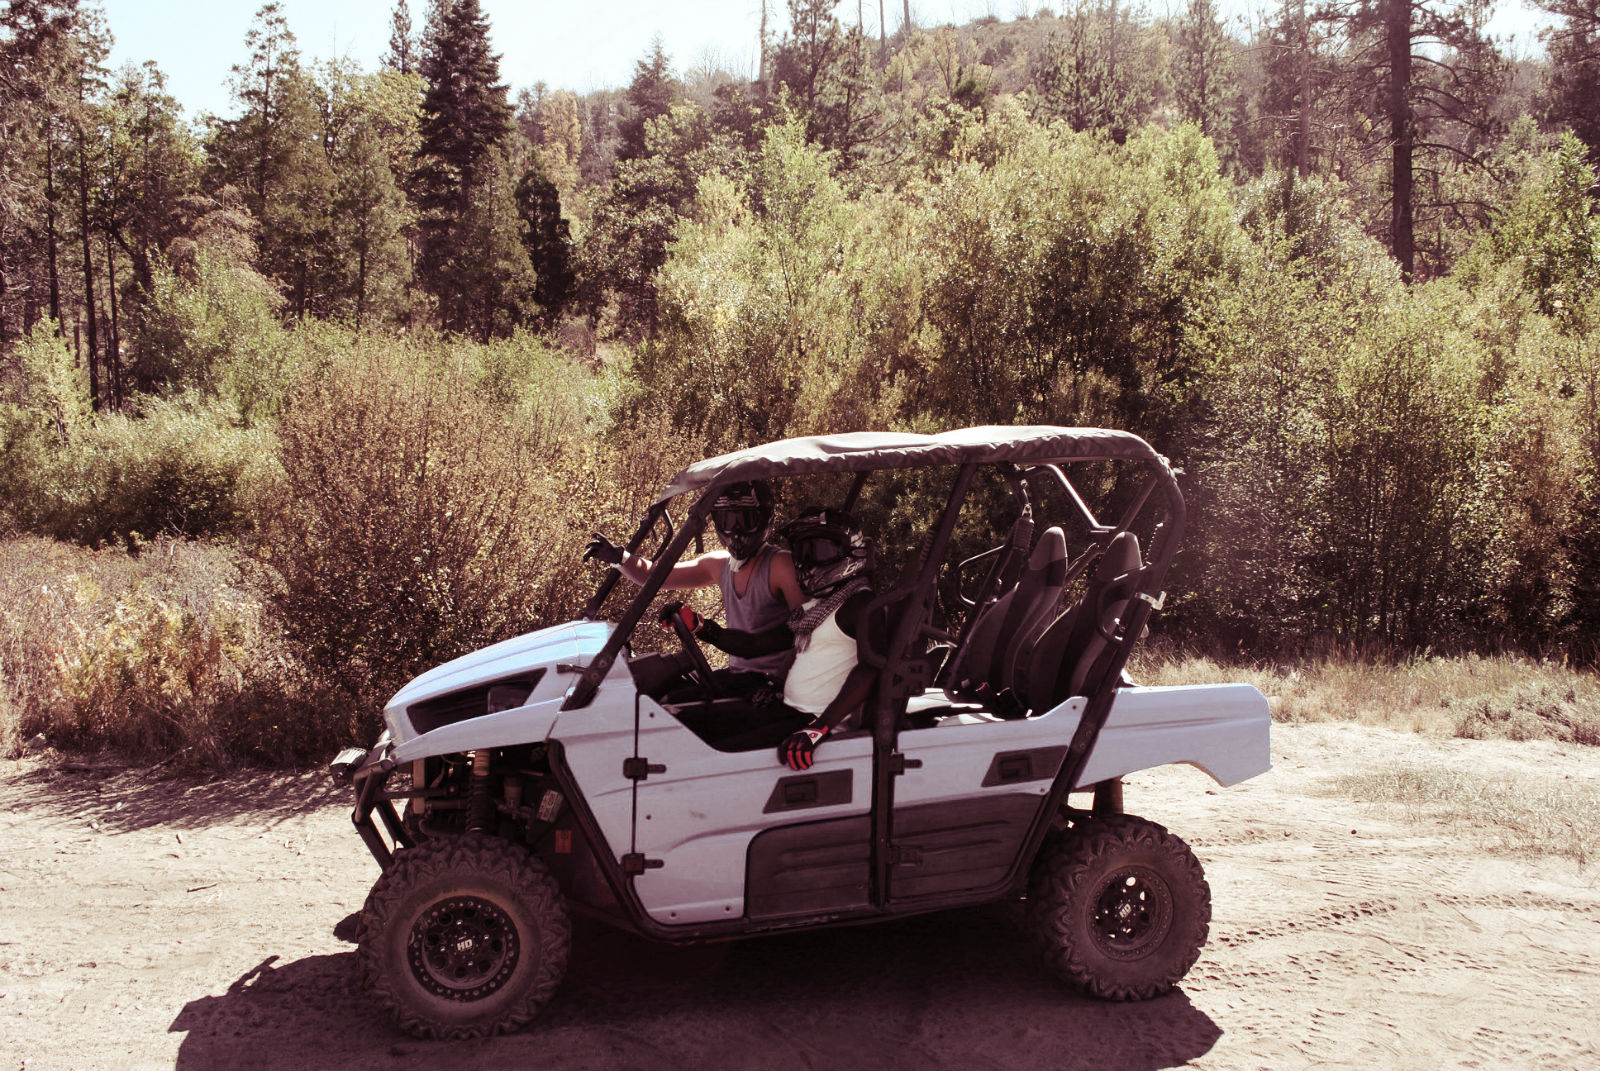 Enjoy the Mountain ATV Tour, Lake Arrowhead